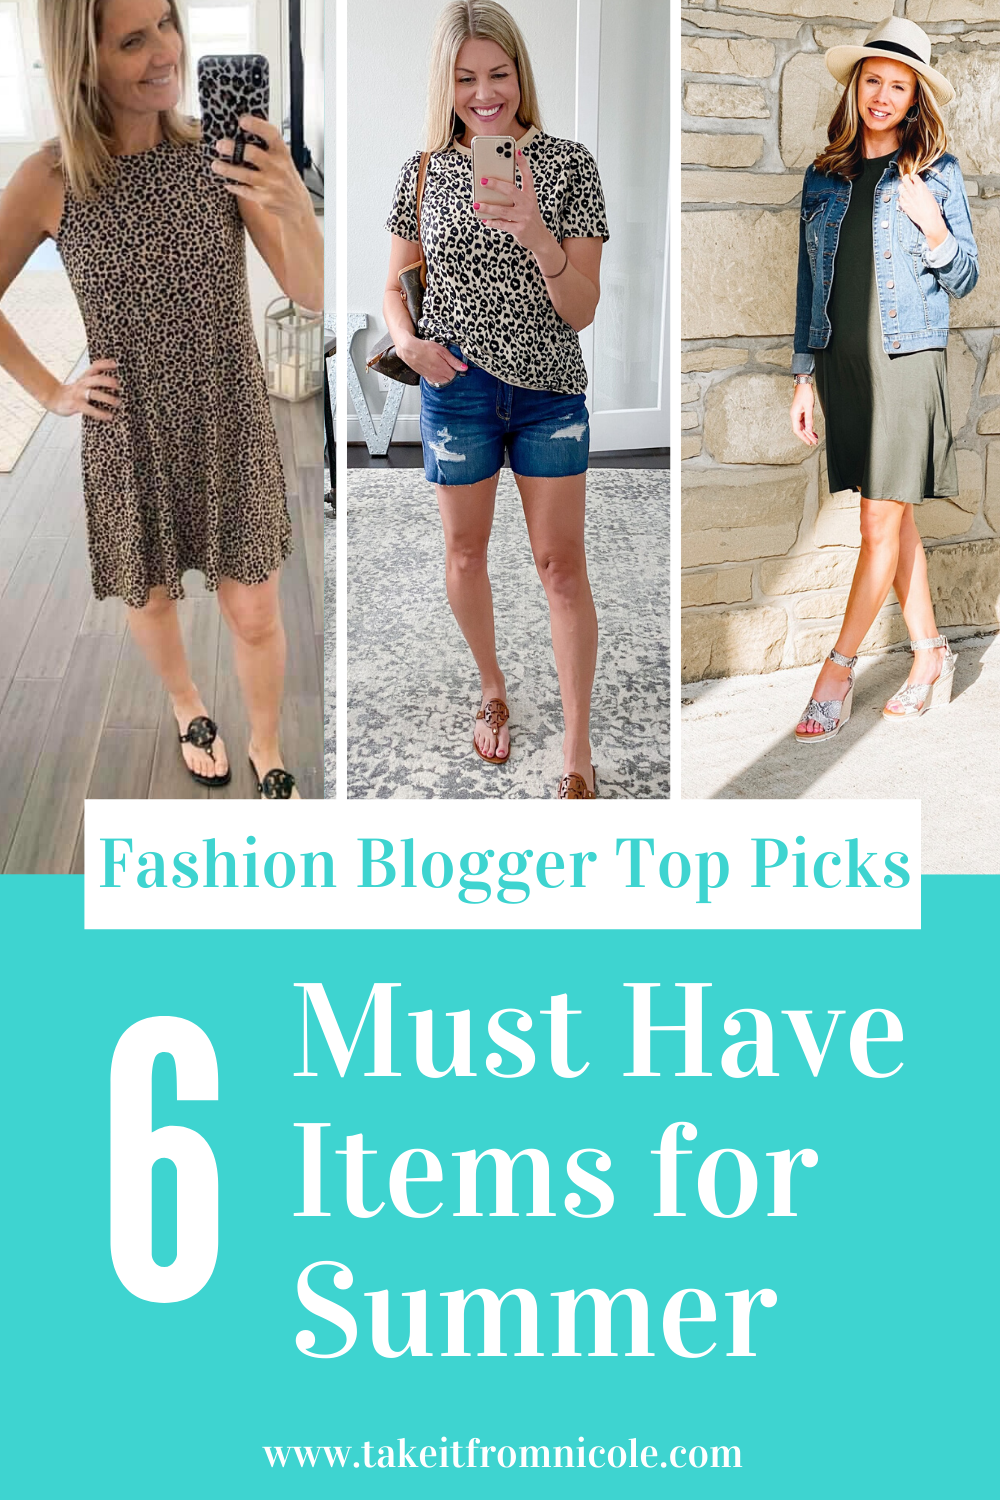 I asked my blogging friends what their top must-have fashion items were for summmer. Each of the featured items is under $40. Great way to round out your summer wardrobe on a budget!